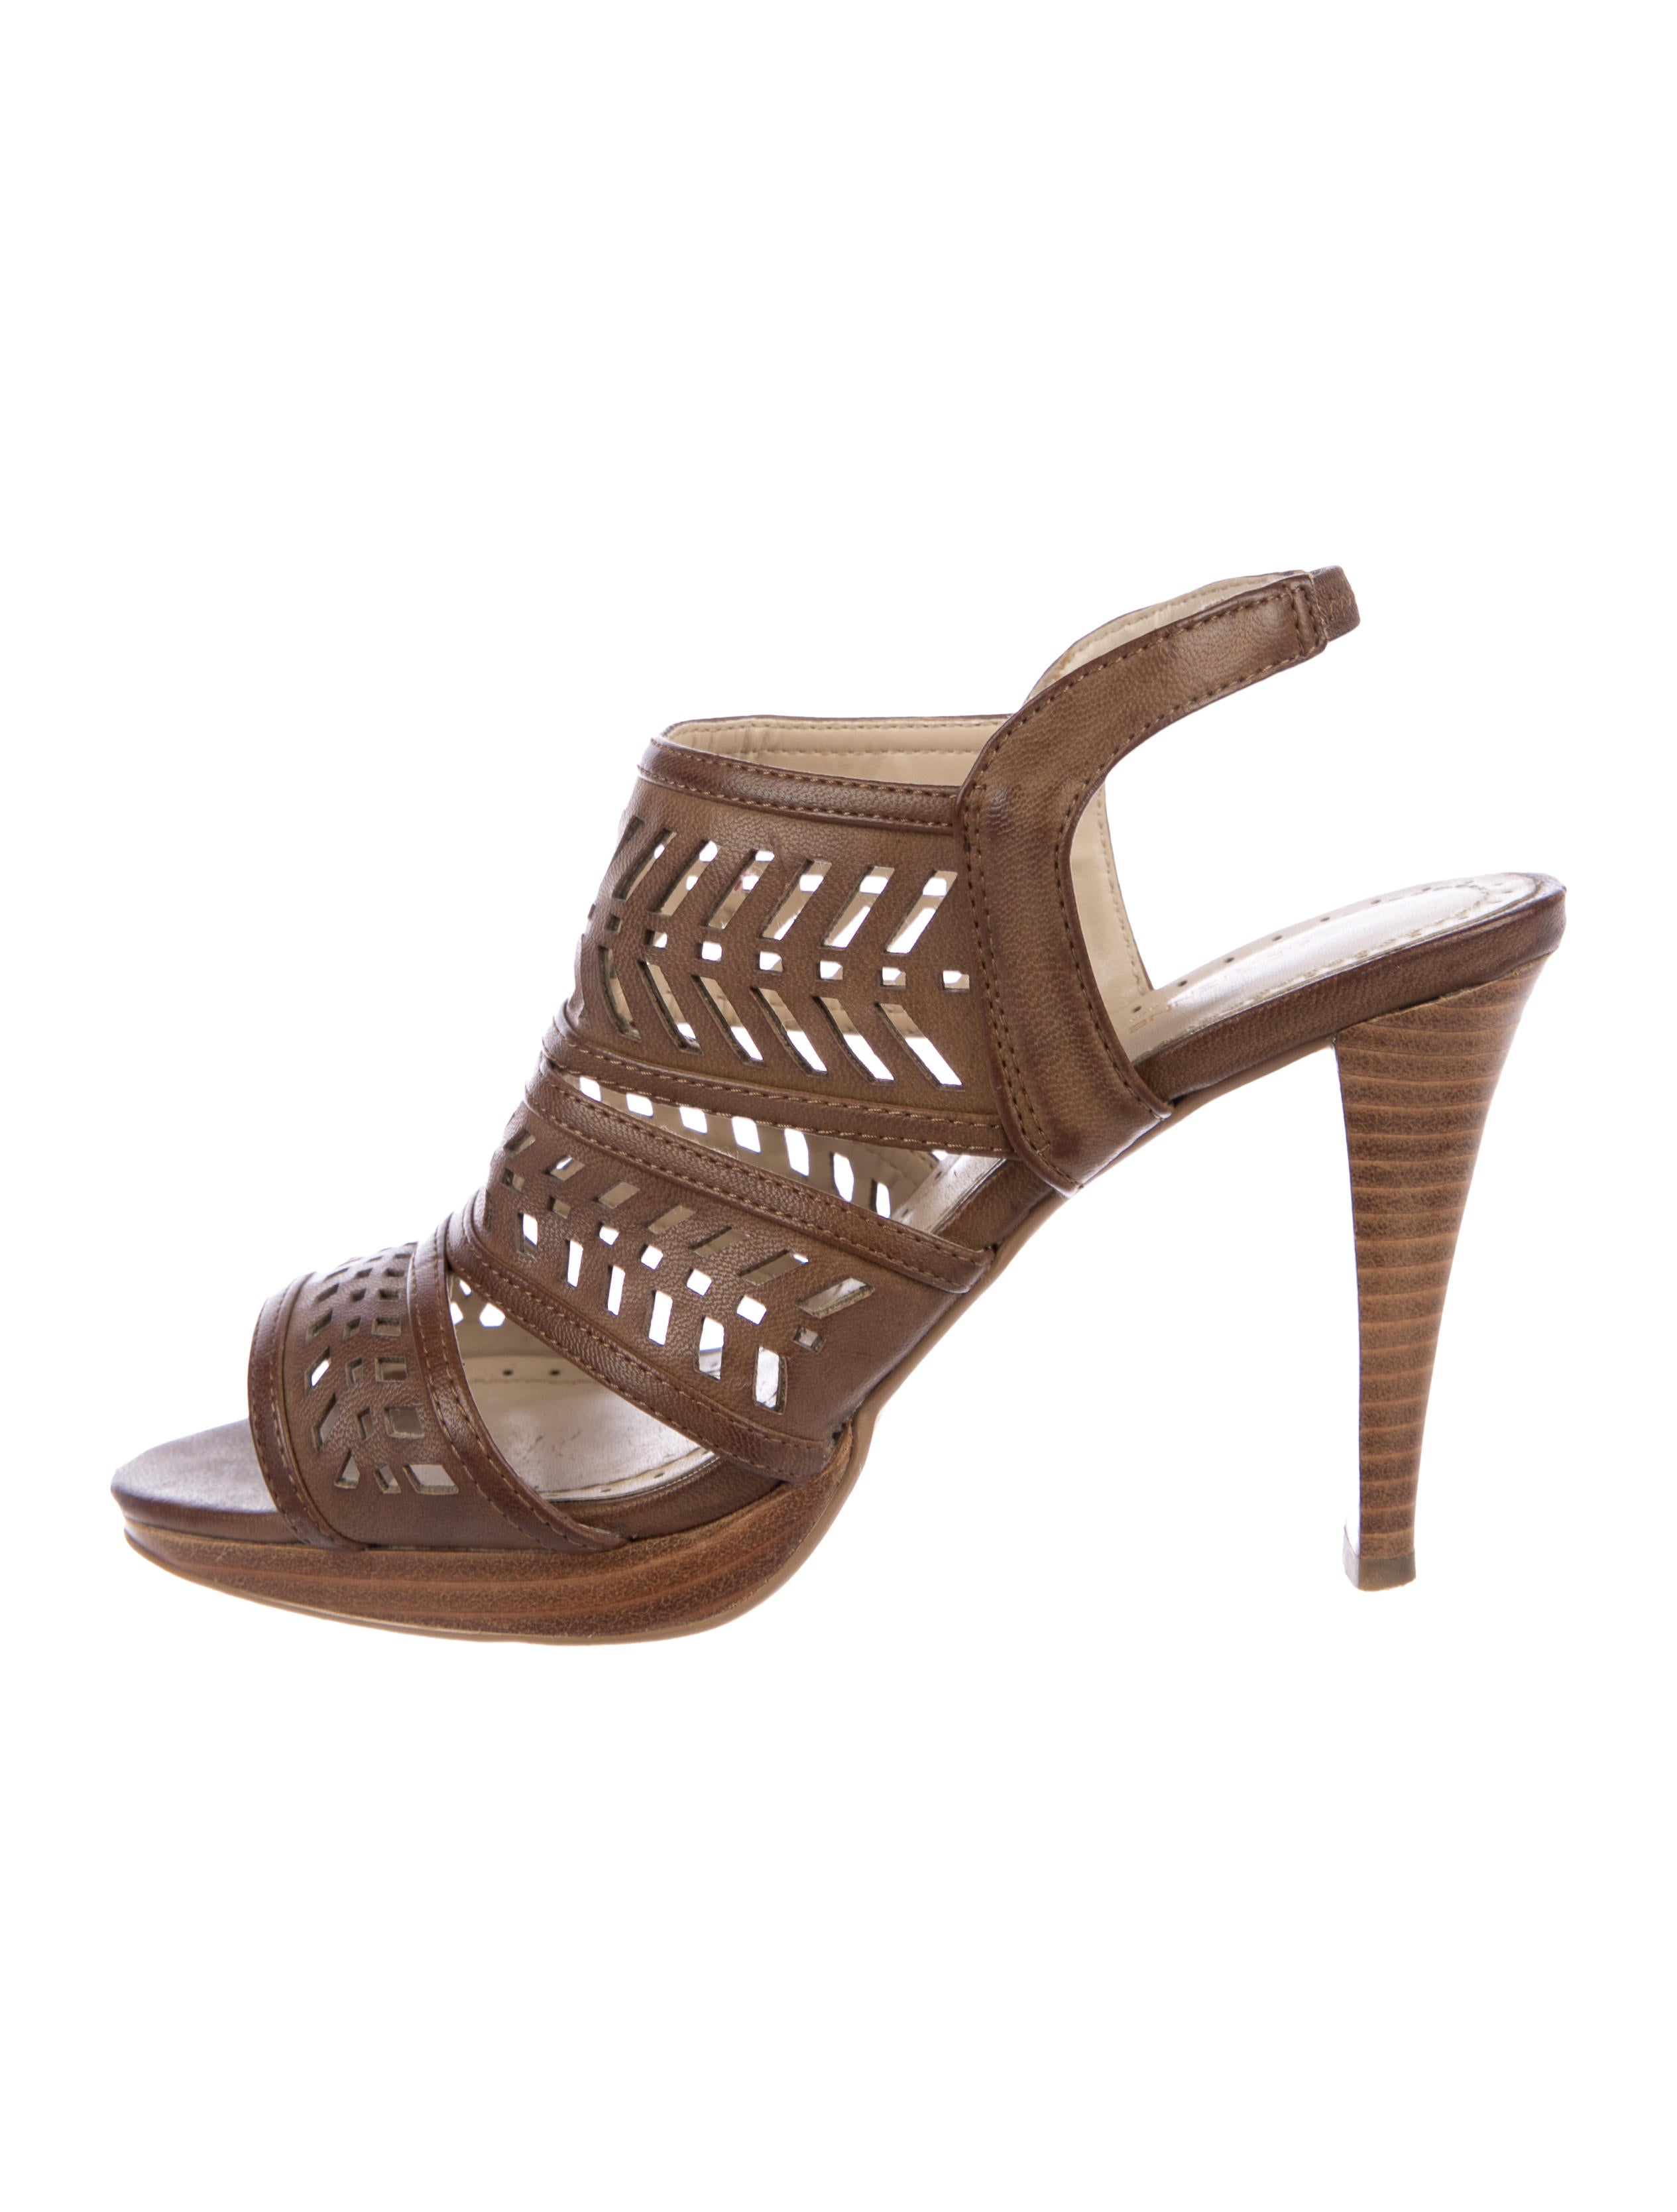 clearance best prices Adrienne Vittadini Cutout Slingback Sandals cheapest clearance store popular sale online kdfjQj1